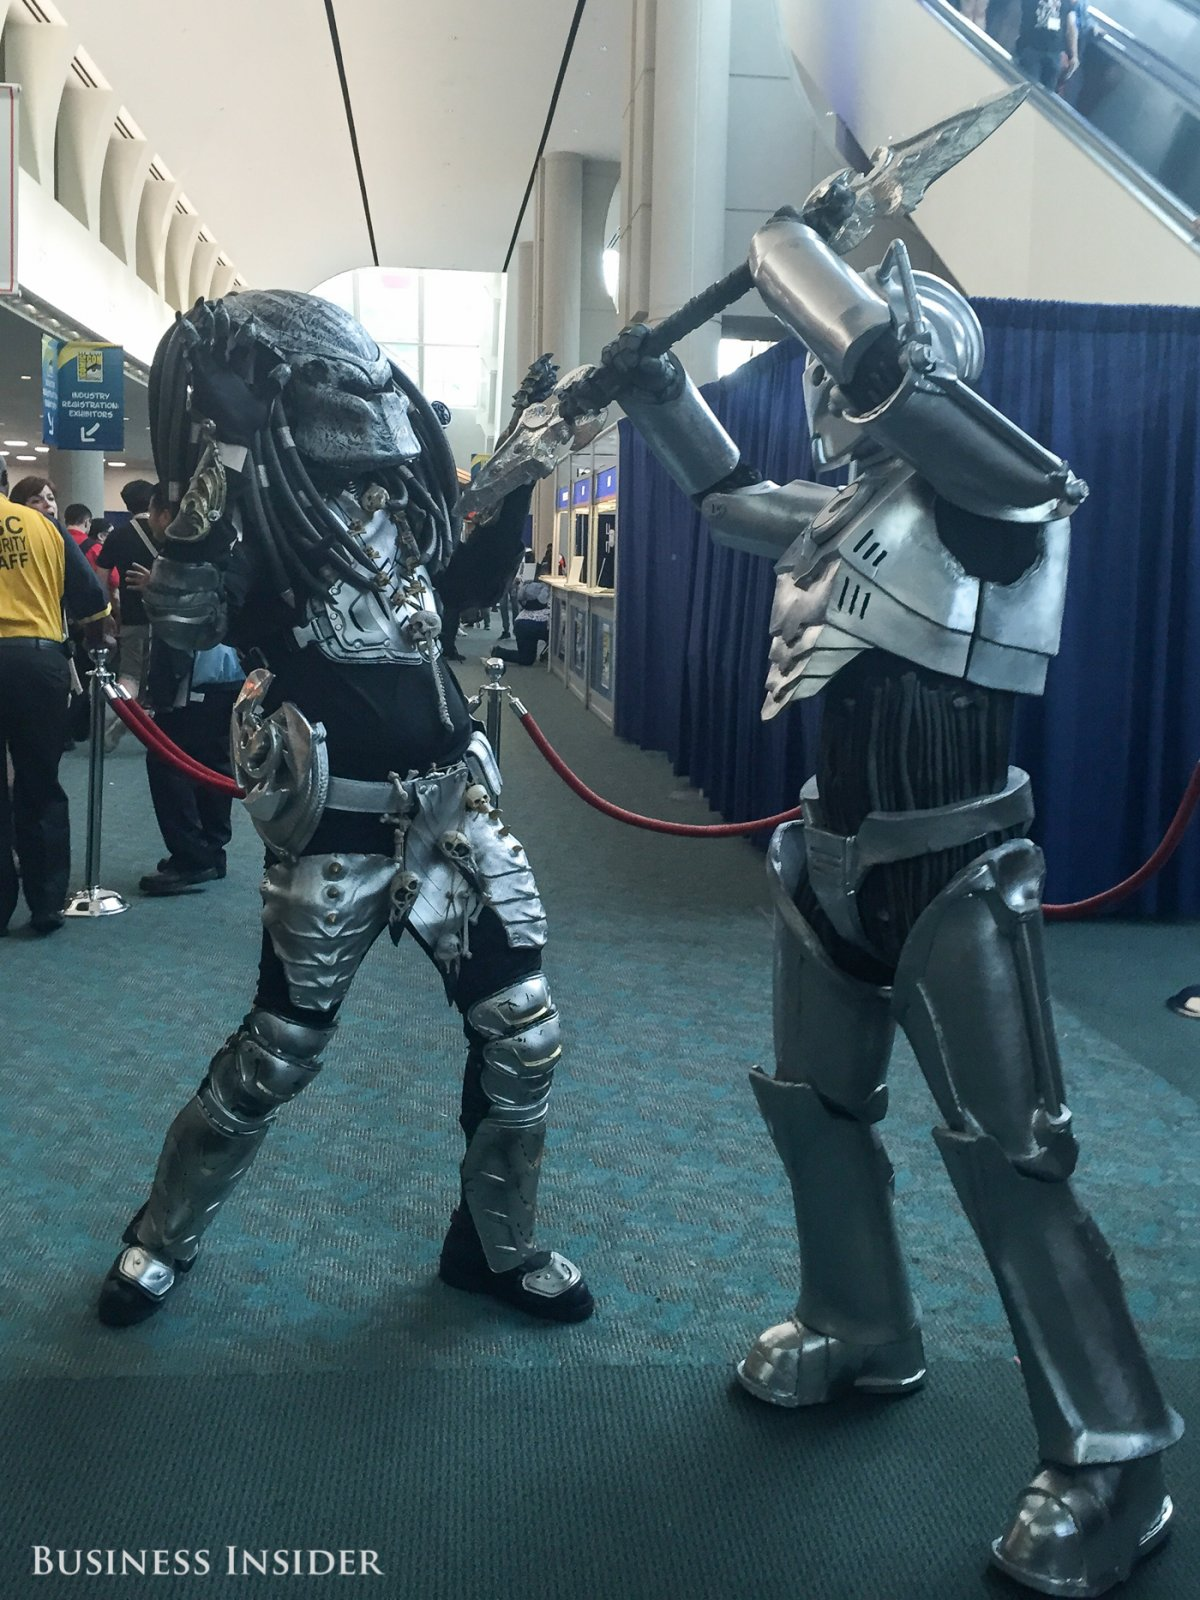 predator-and-cyberman-from-doctor-who-duke-it-out.jpg